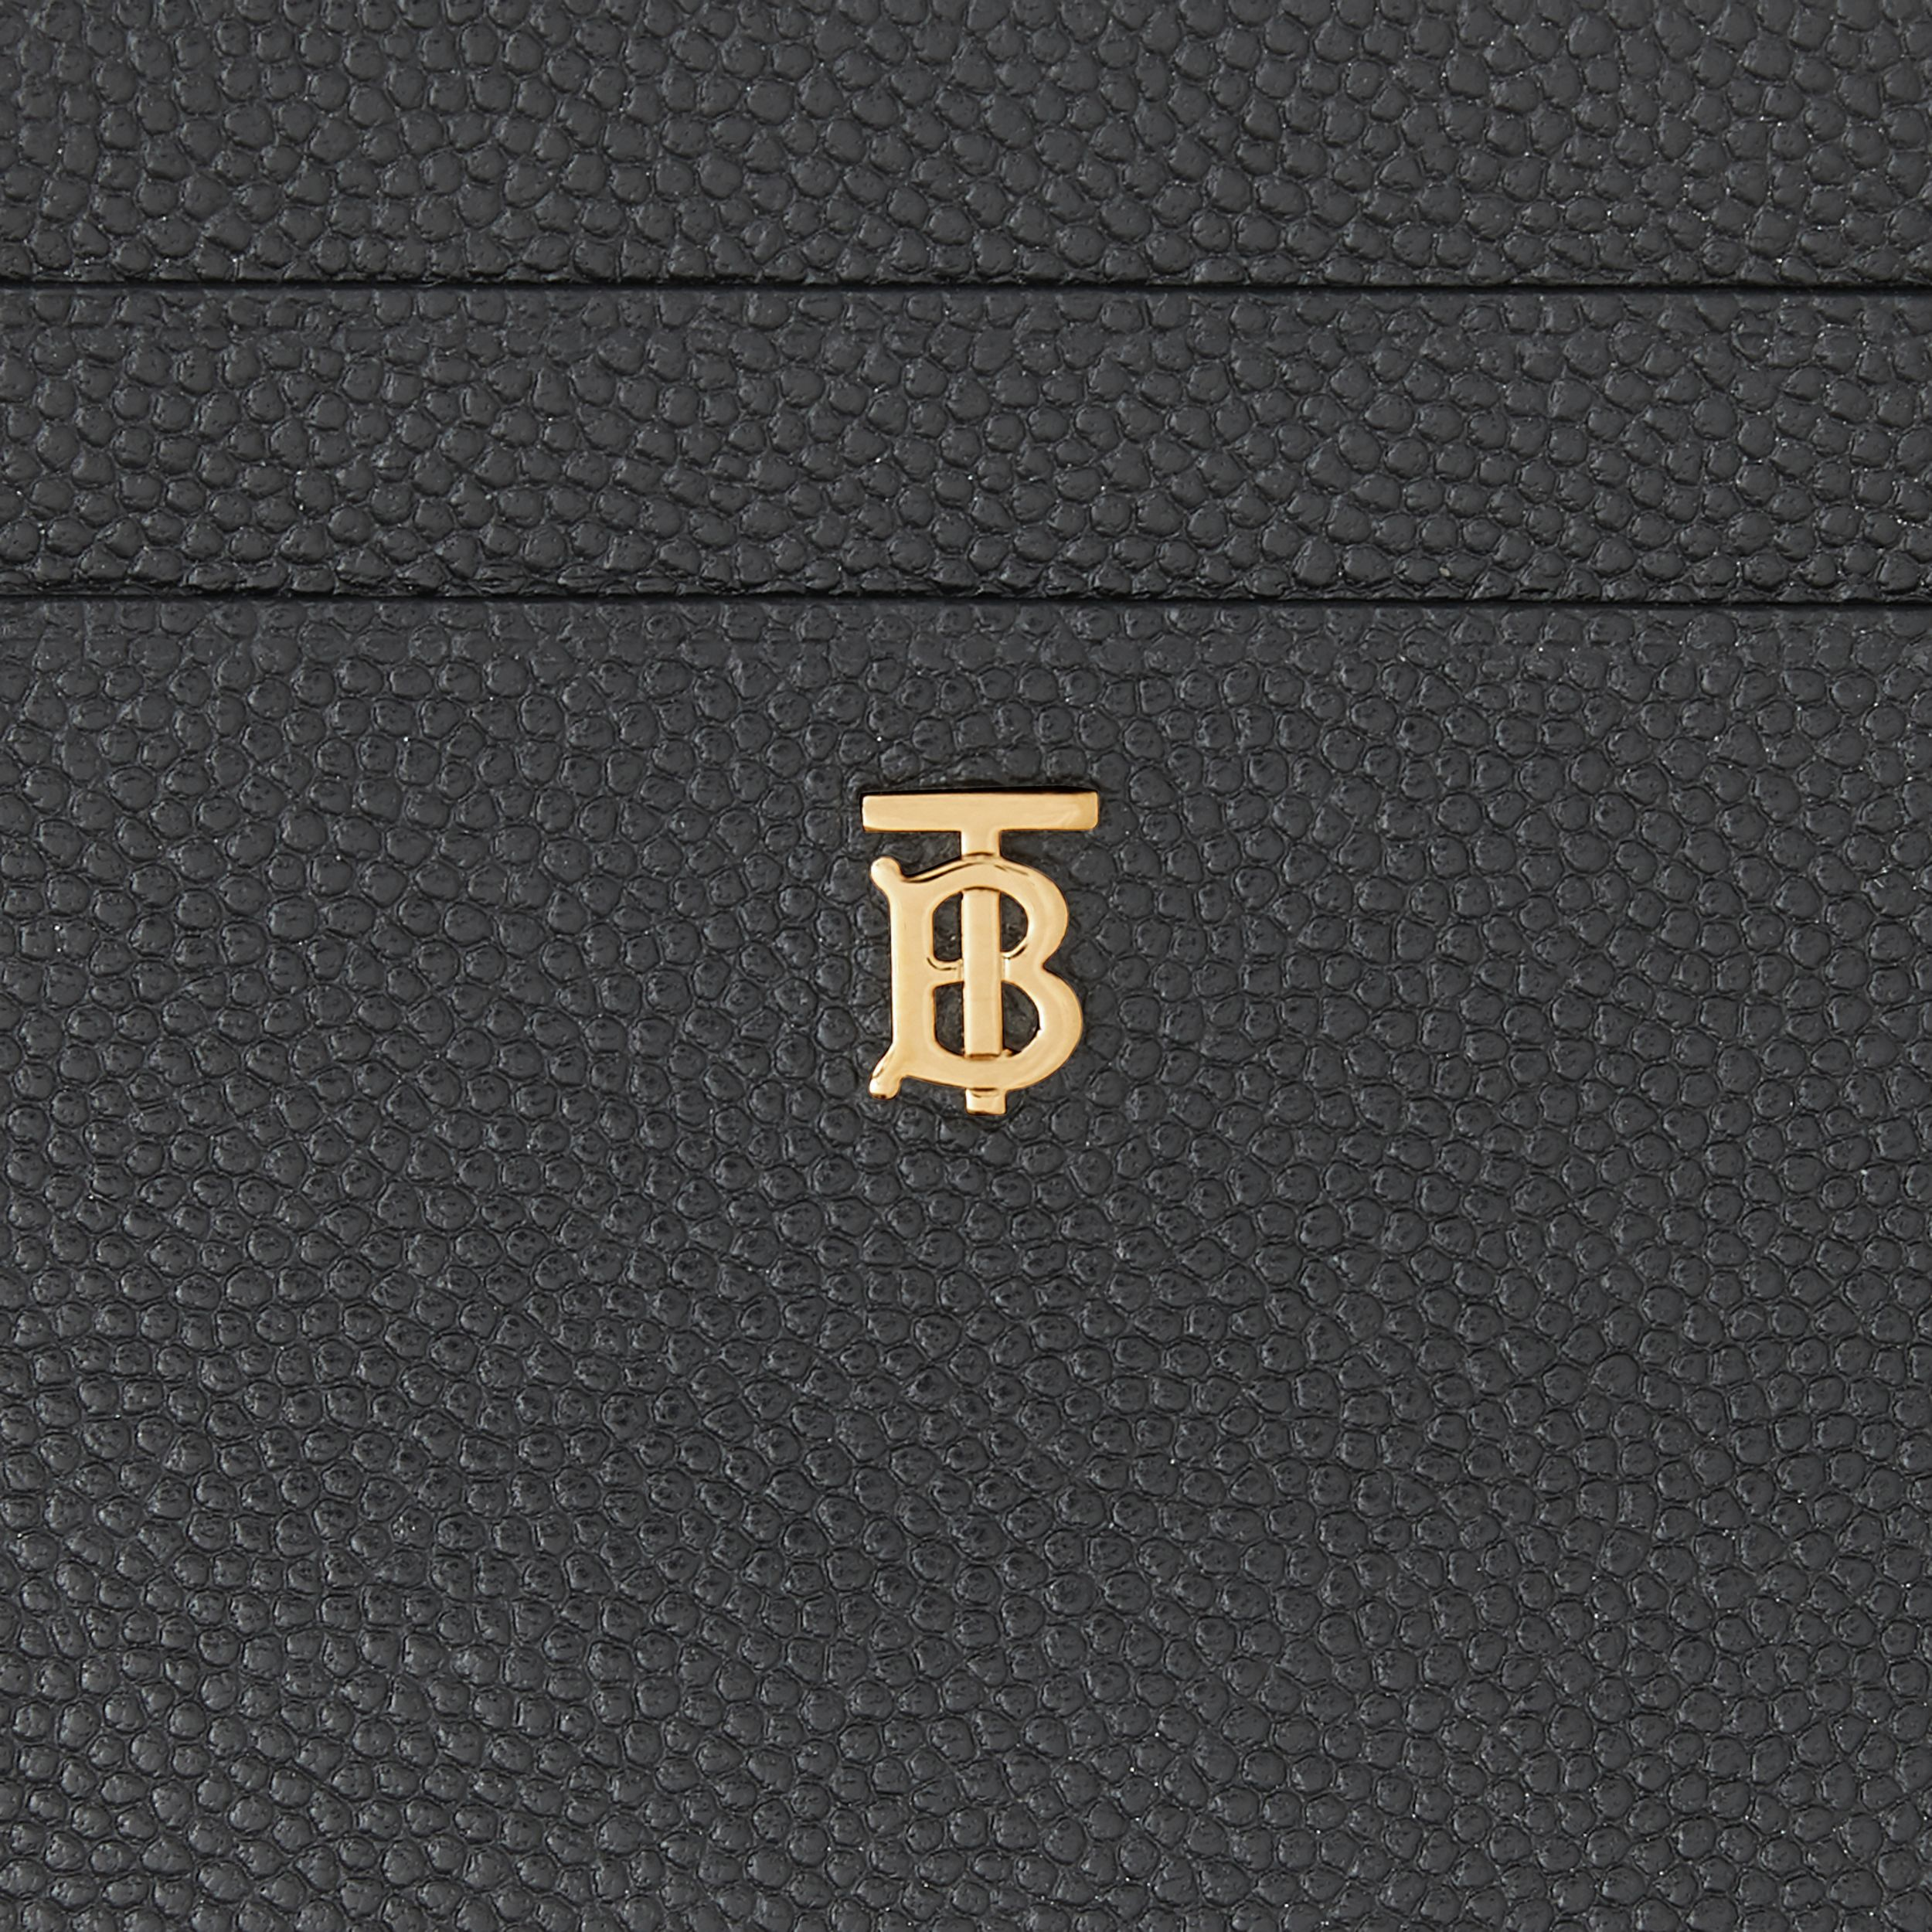 Monogram Motif Leather Card Case in Black - Women | Burberry United Kingdom - 2